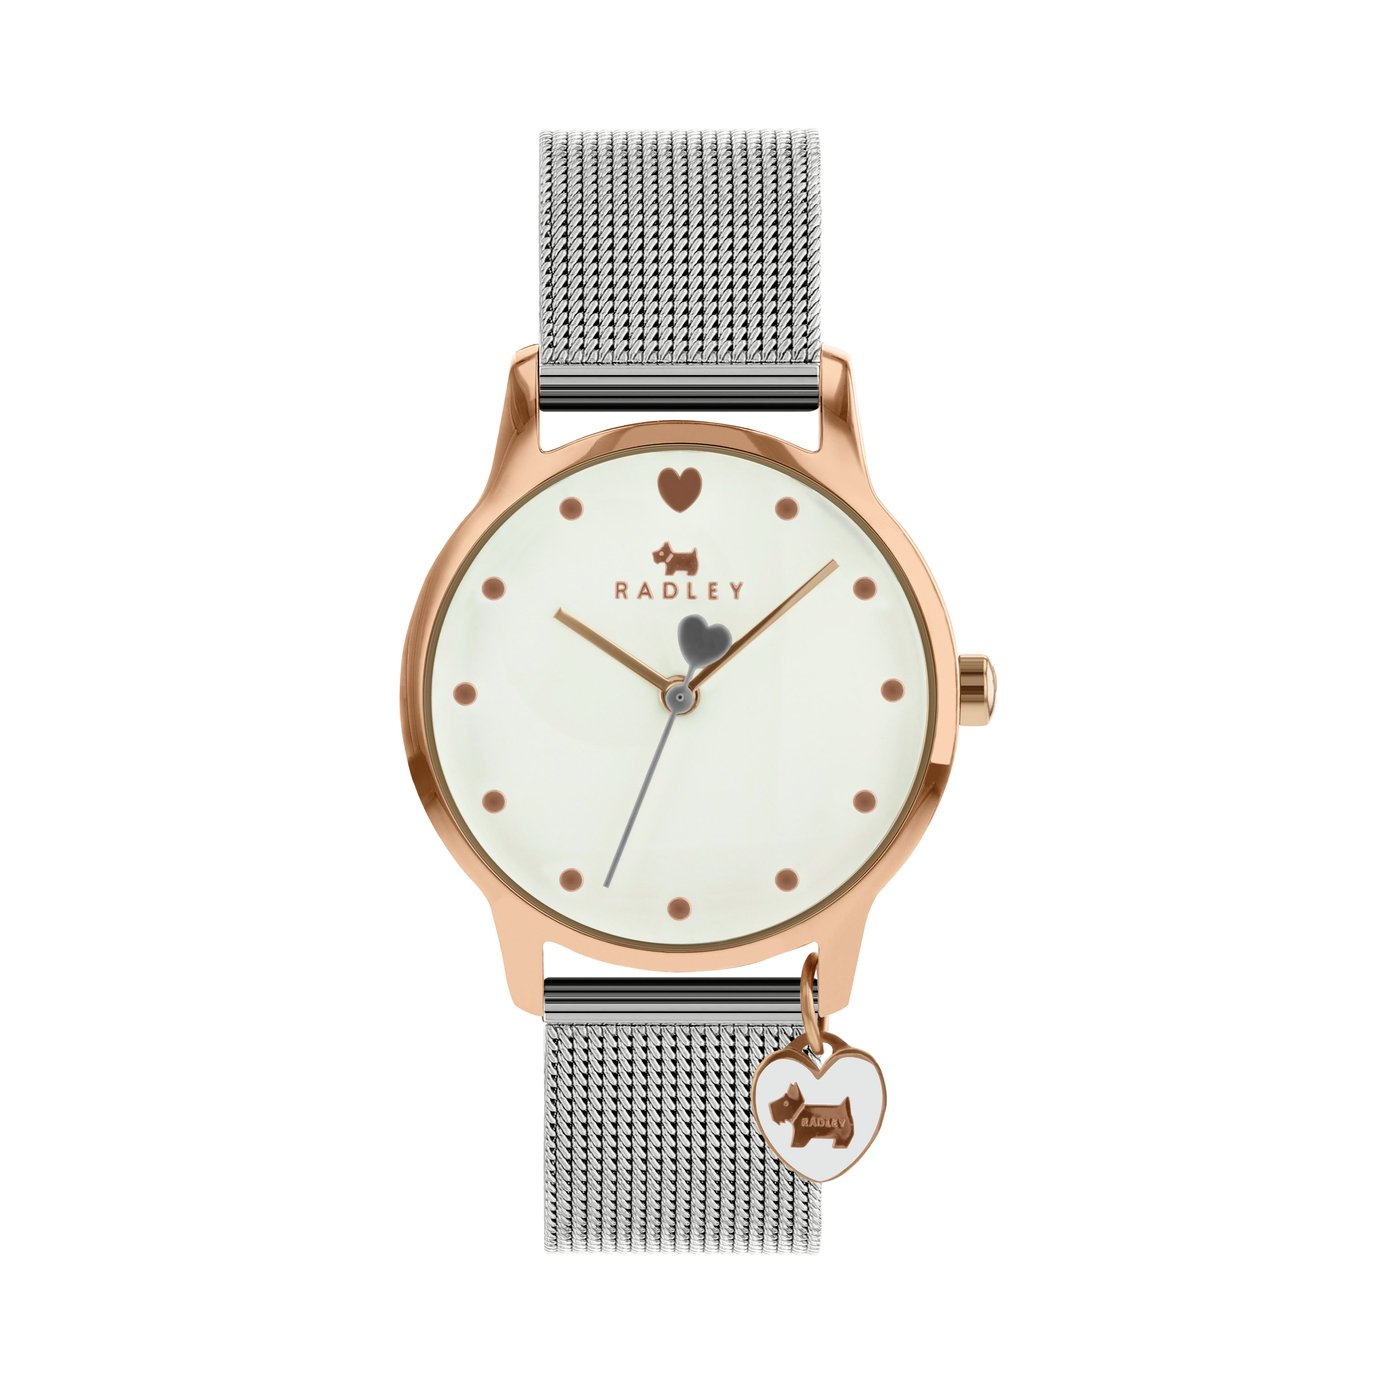 Radley Silver Mesh Bracelet Watch and Heart Dog Charm